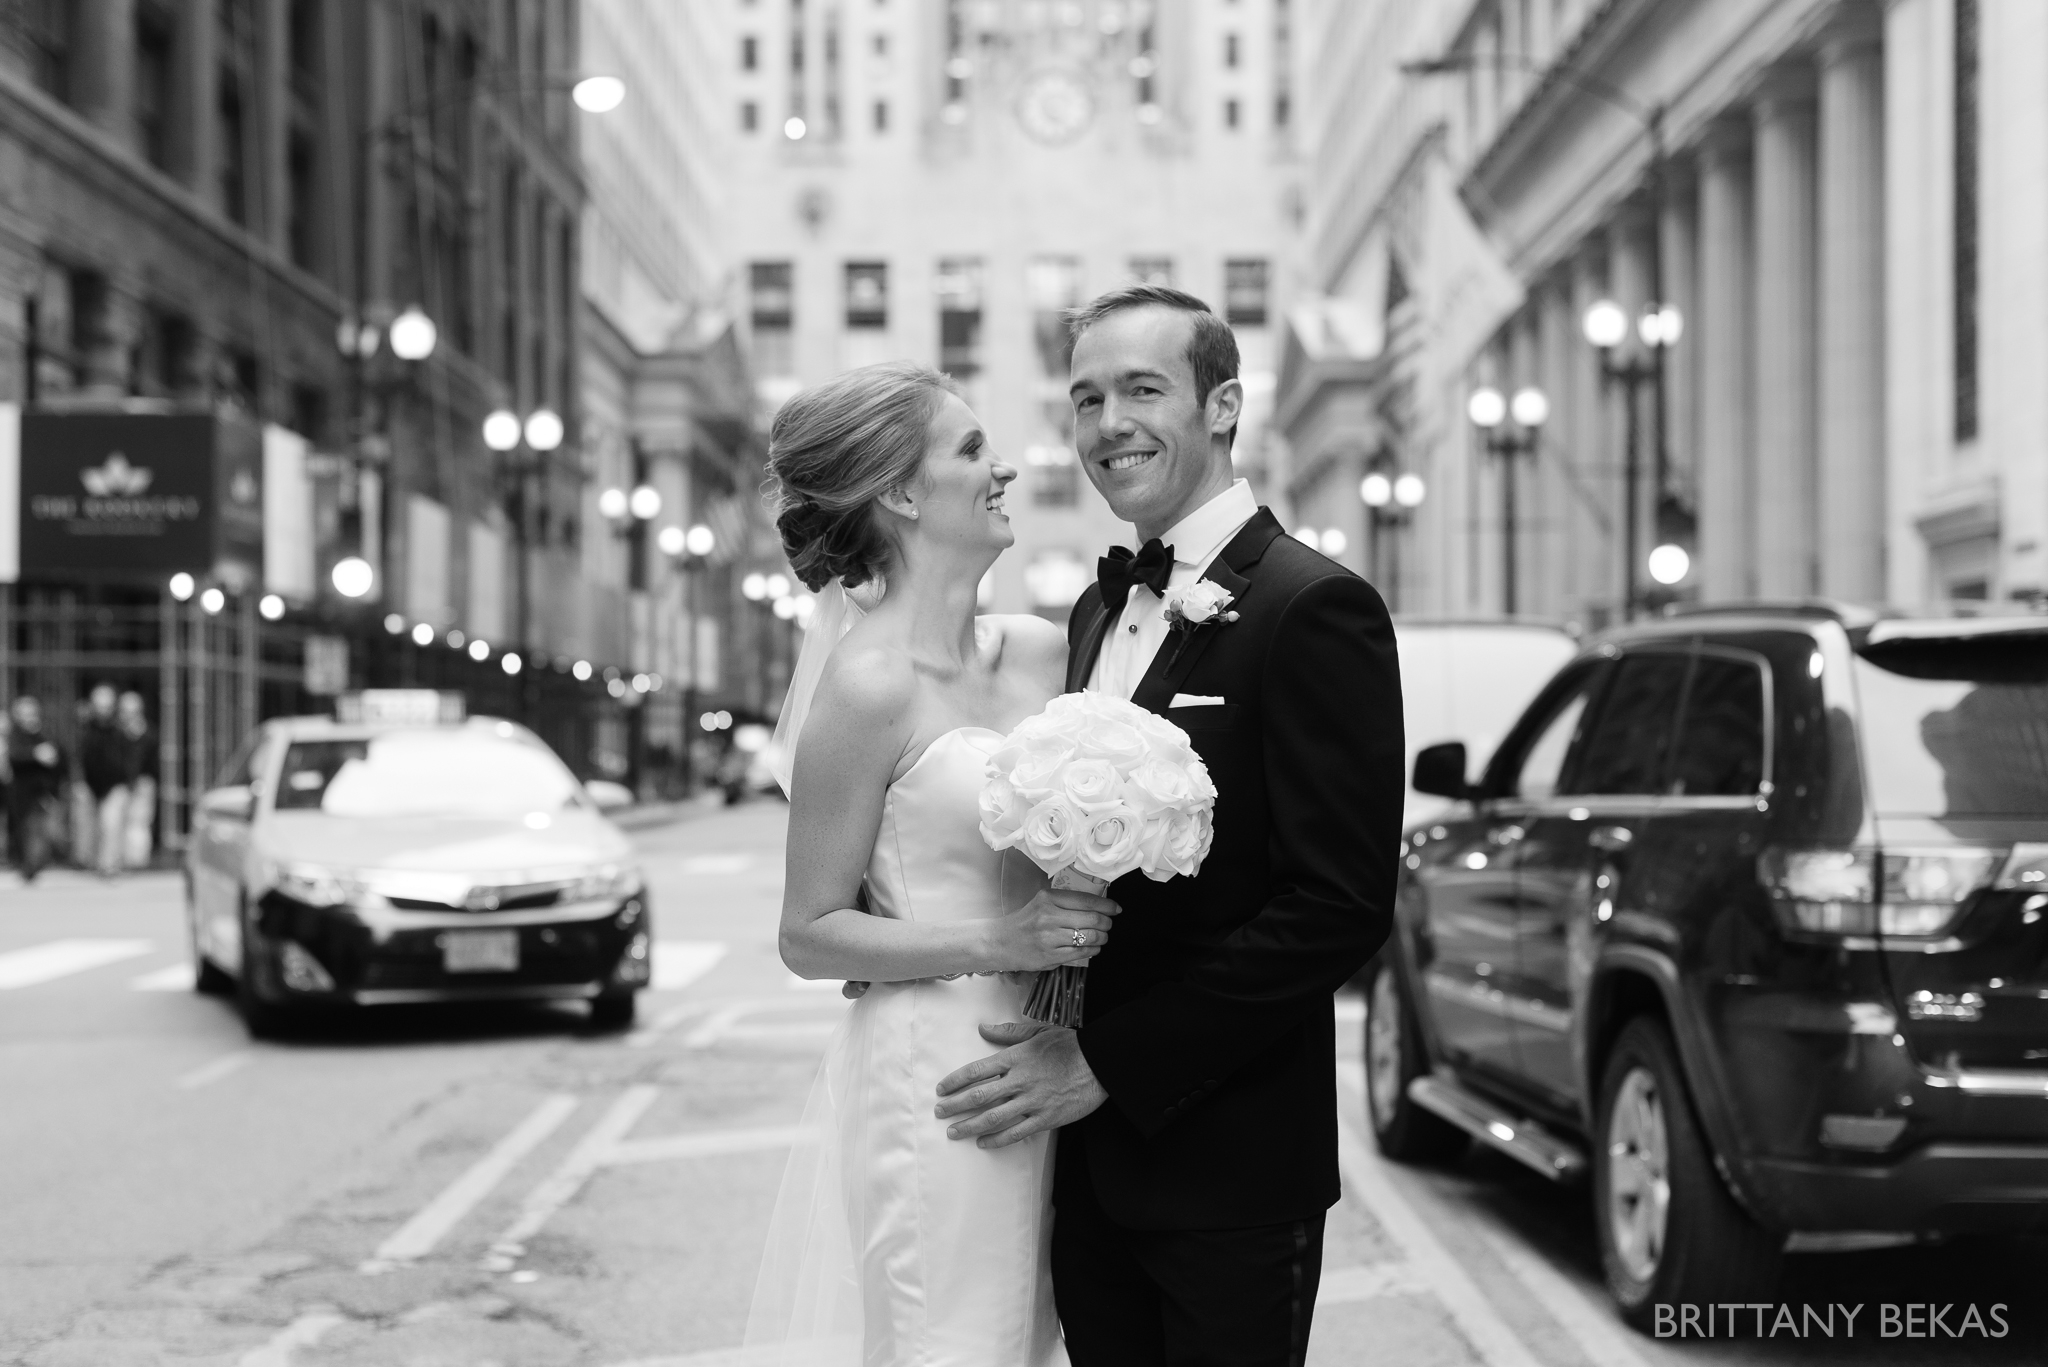 Chicago Wedding Hotel Allegro Wedding Photos - Brittany Bekas Photography_0012